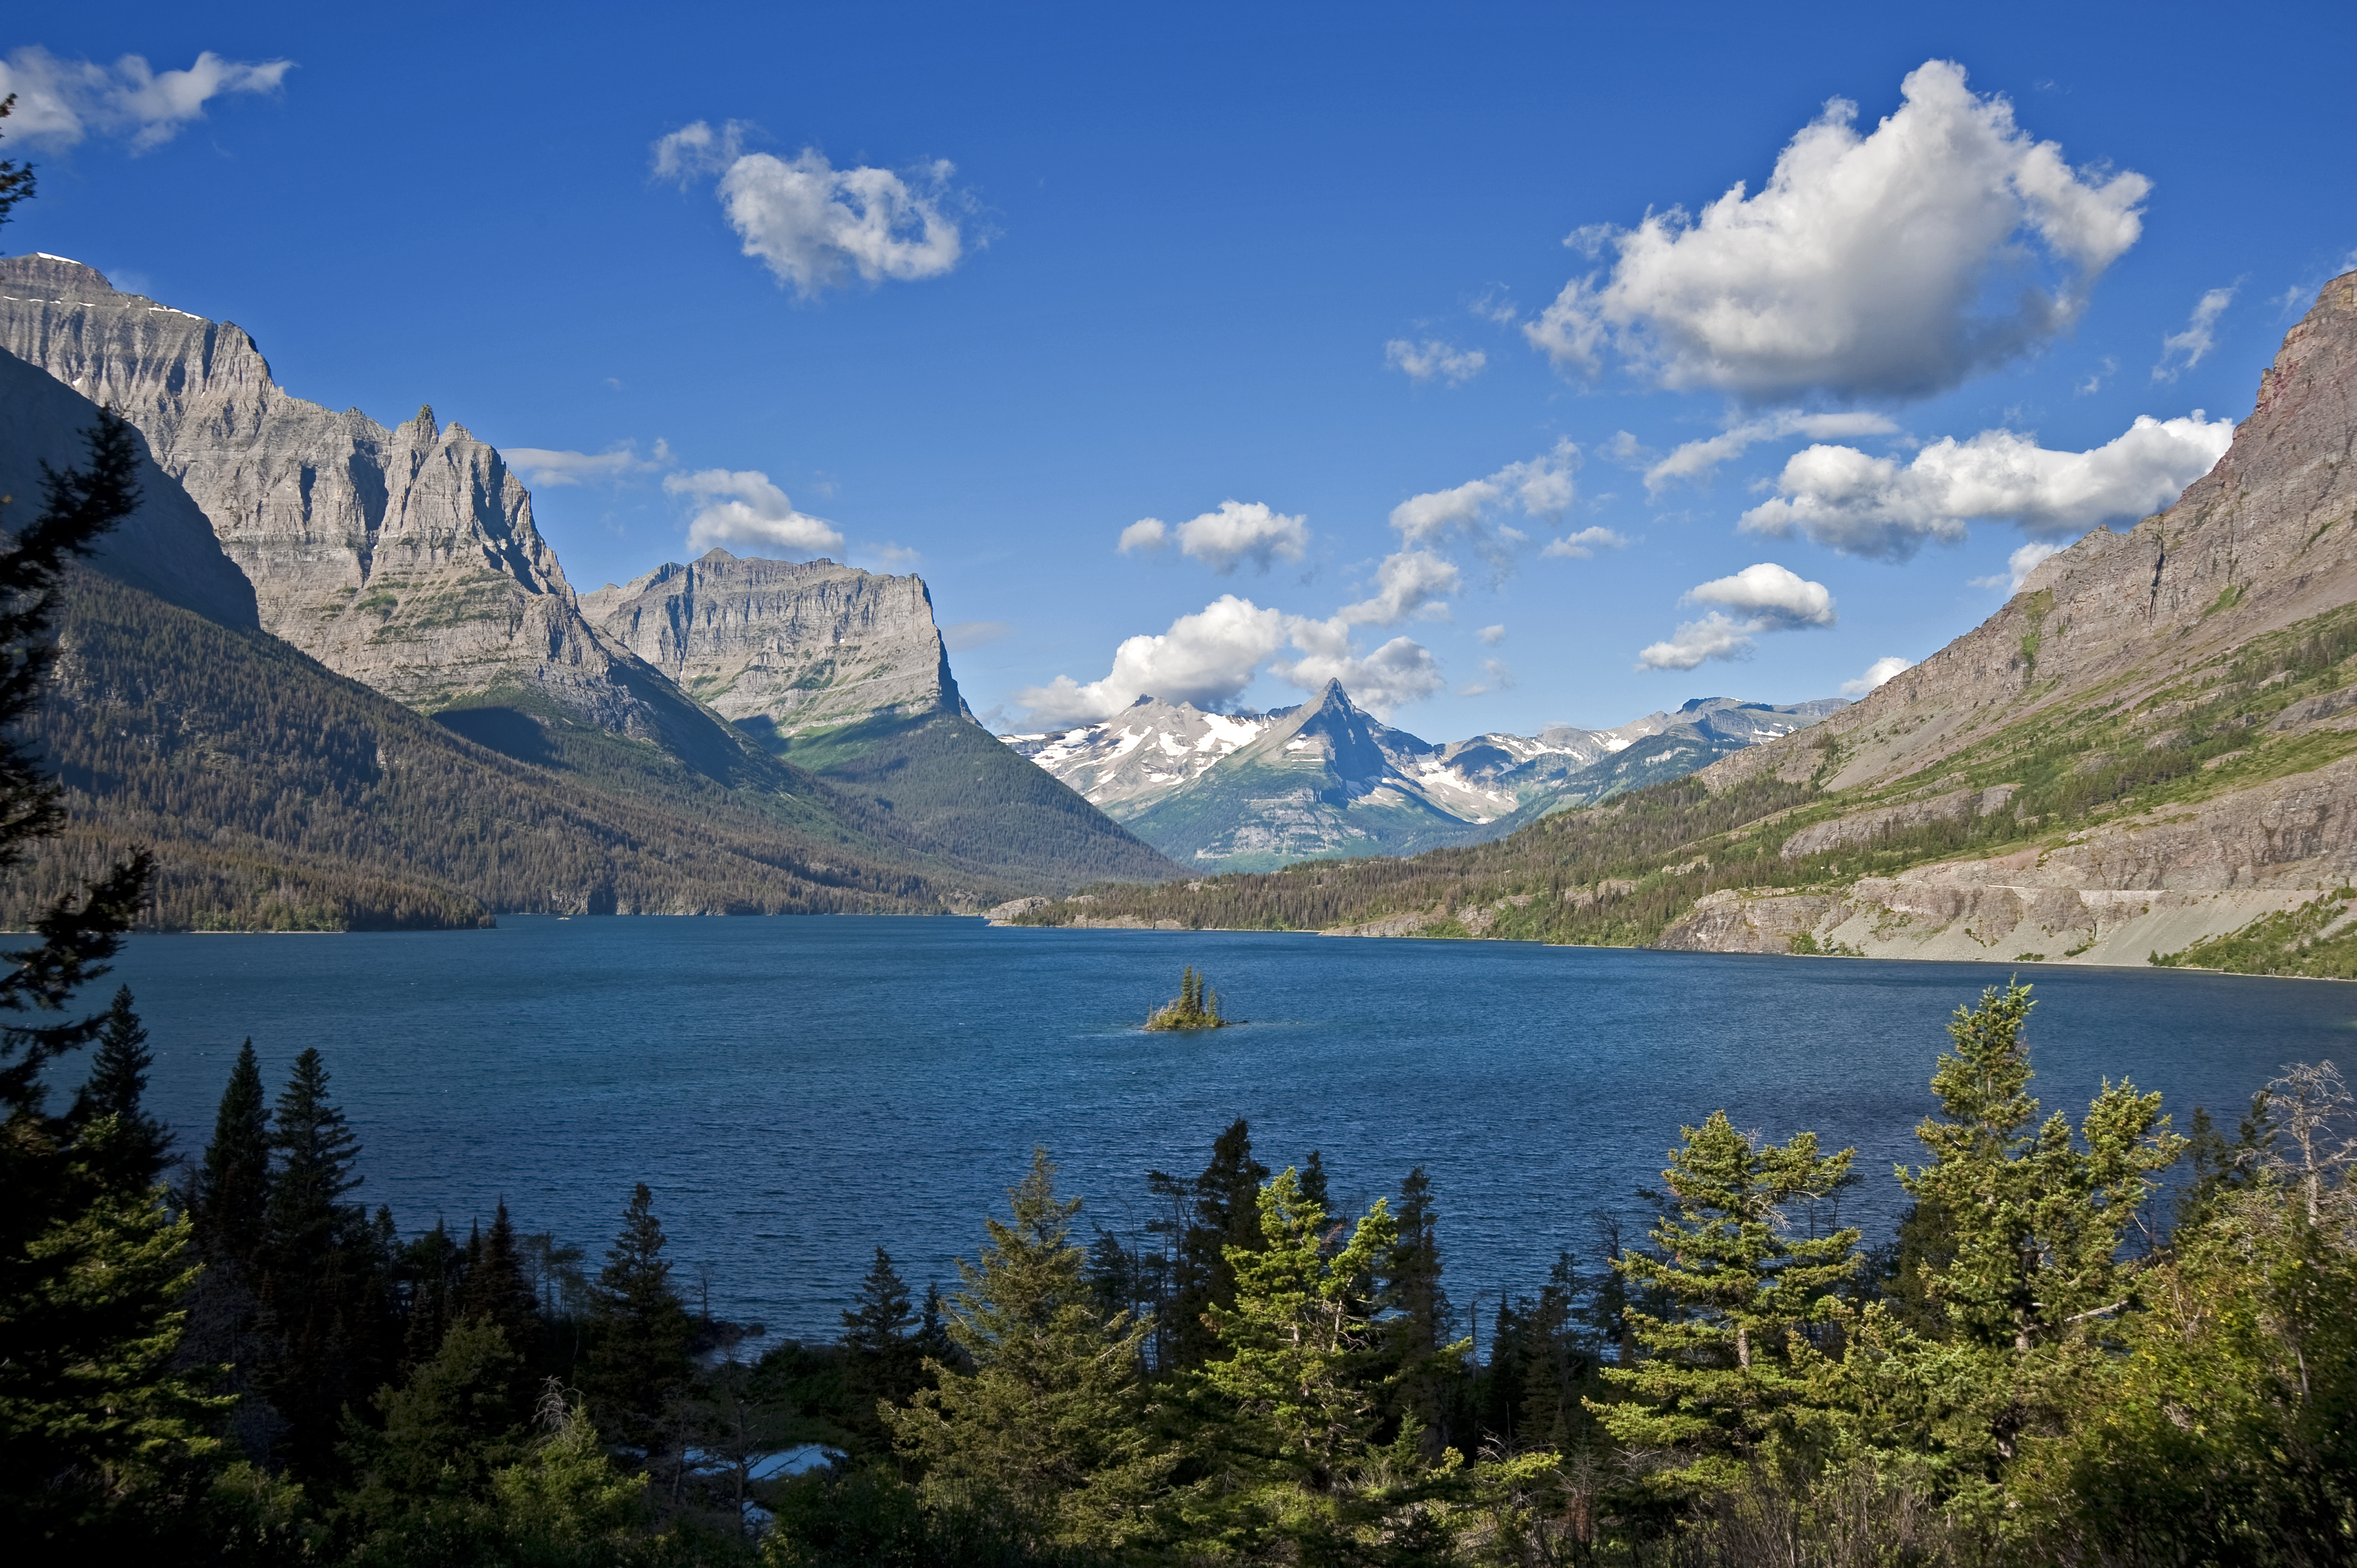 map of montana with Saint Mary Lake on 2560992 in addition Saint Mary Lake likewise Mt mtn photo page besides Feisty Pets Monkey Grandmaster Funk 1999 as well VCii Helena Montana.